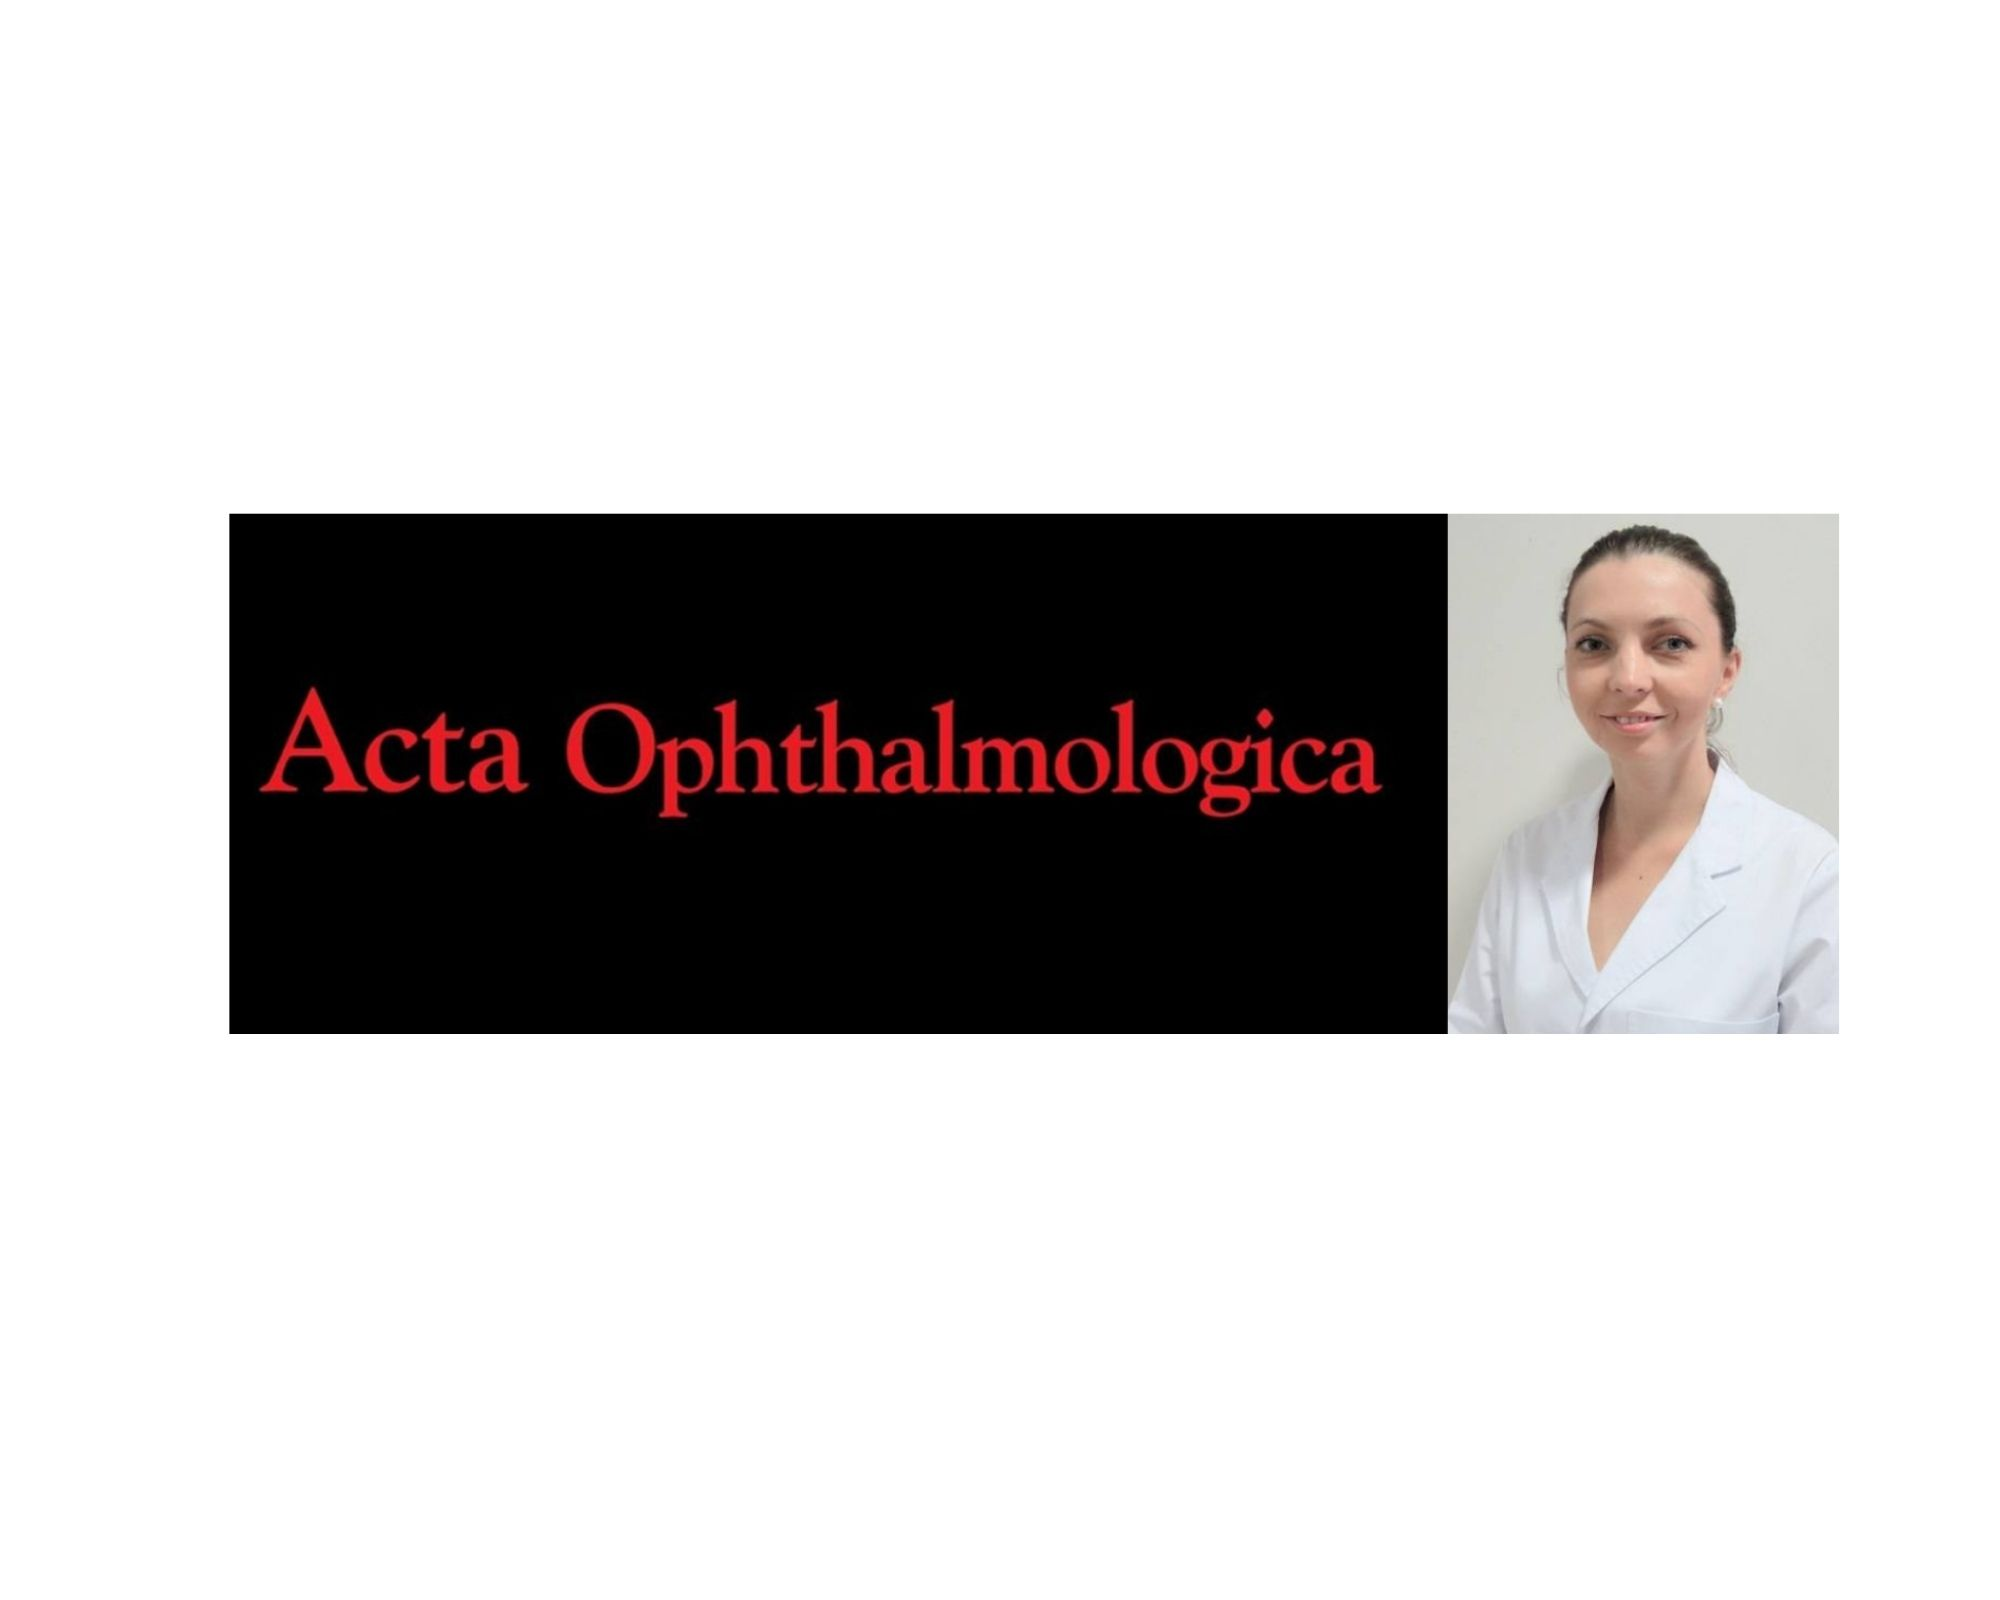 Dr. Dyrda participates in an international study of central serous chorioretinopathy